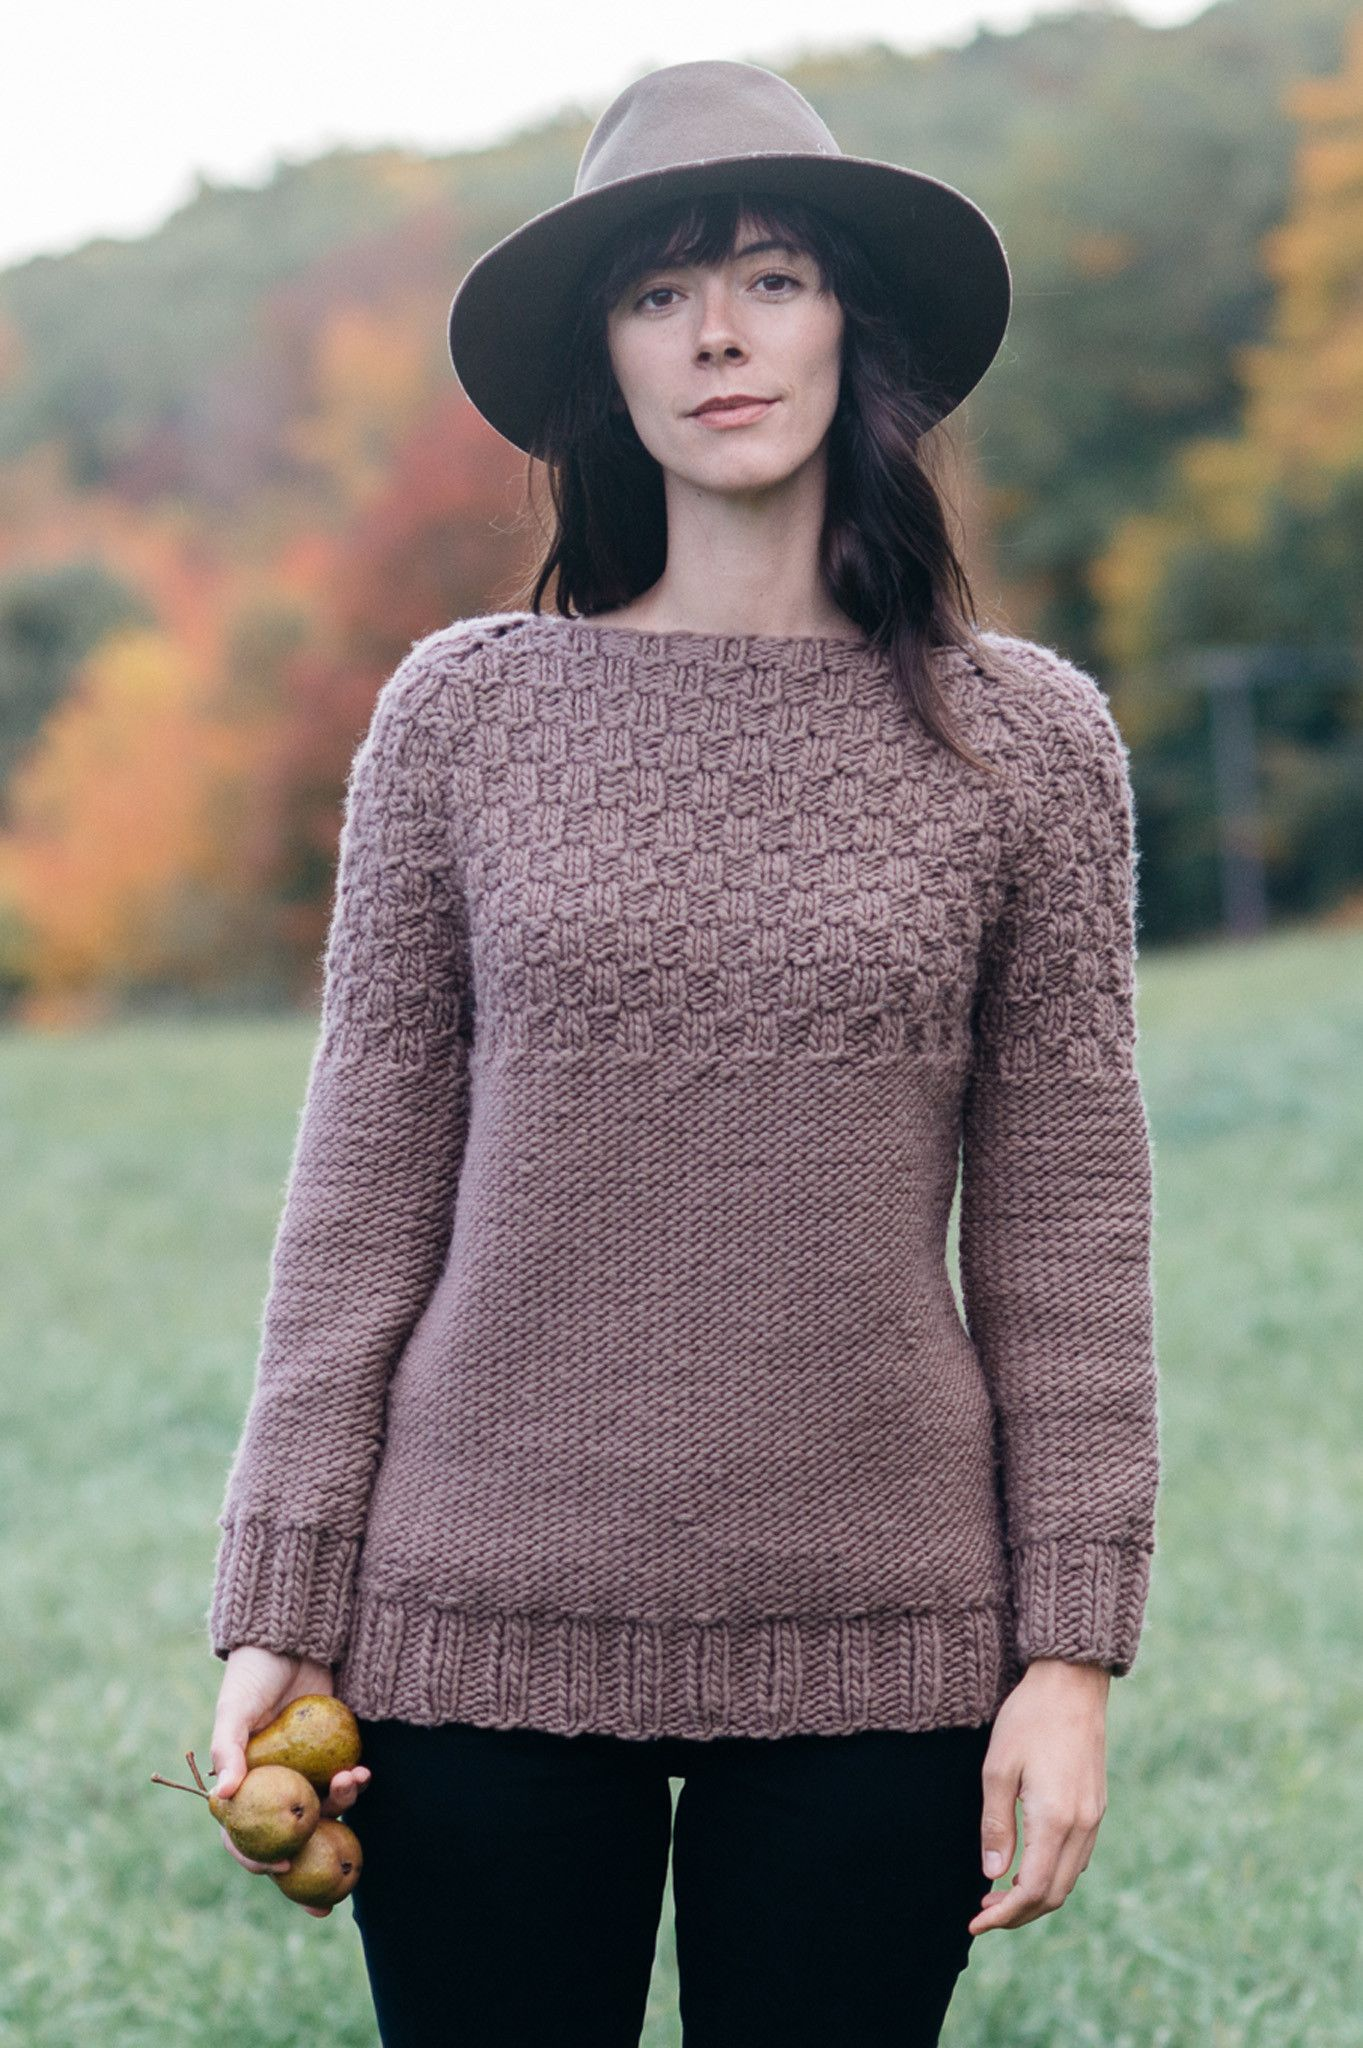 Quince co butte sweater knitting projects pinterest quince co butte sweater sweater knitting patternsknitting sweaterspullover bankloansurffo Choice Image